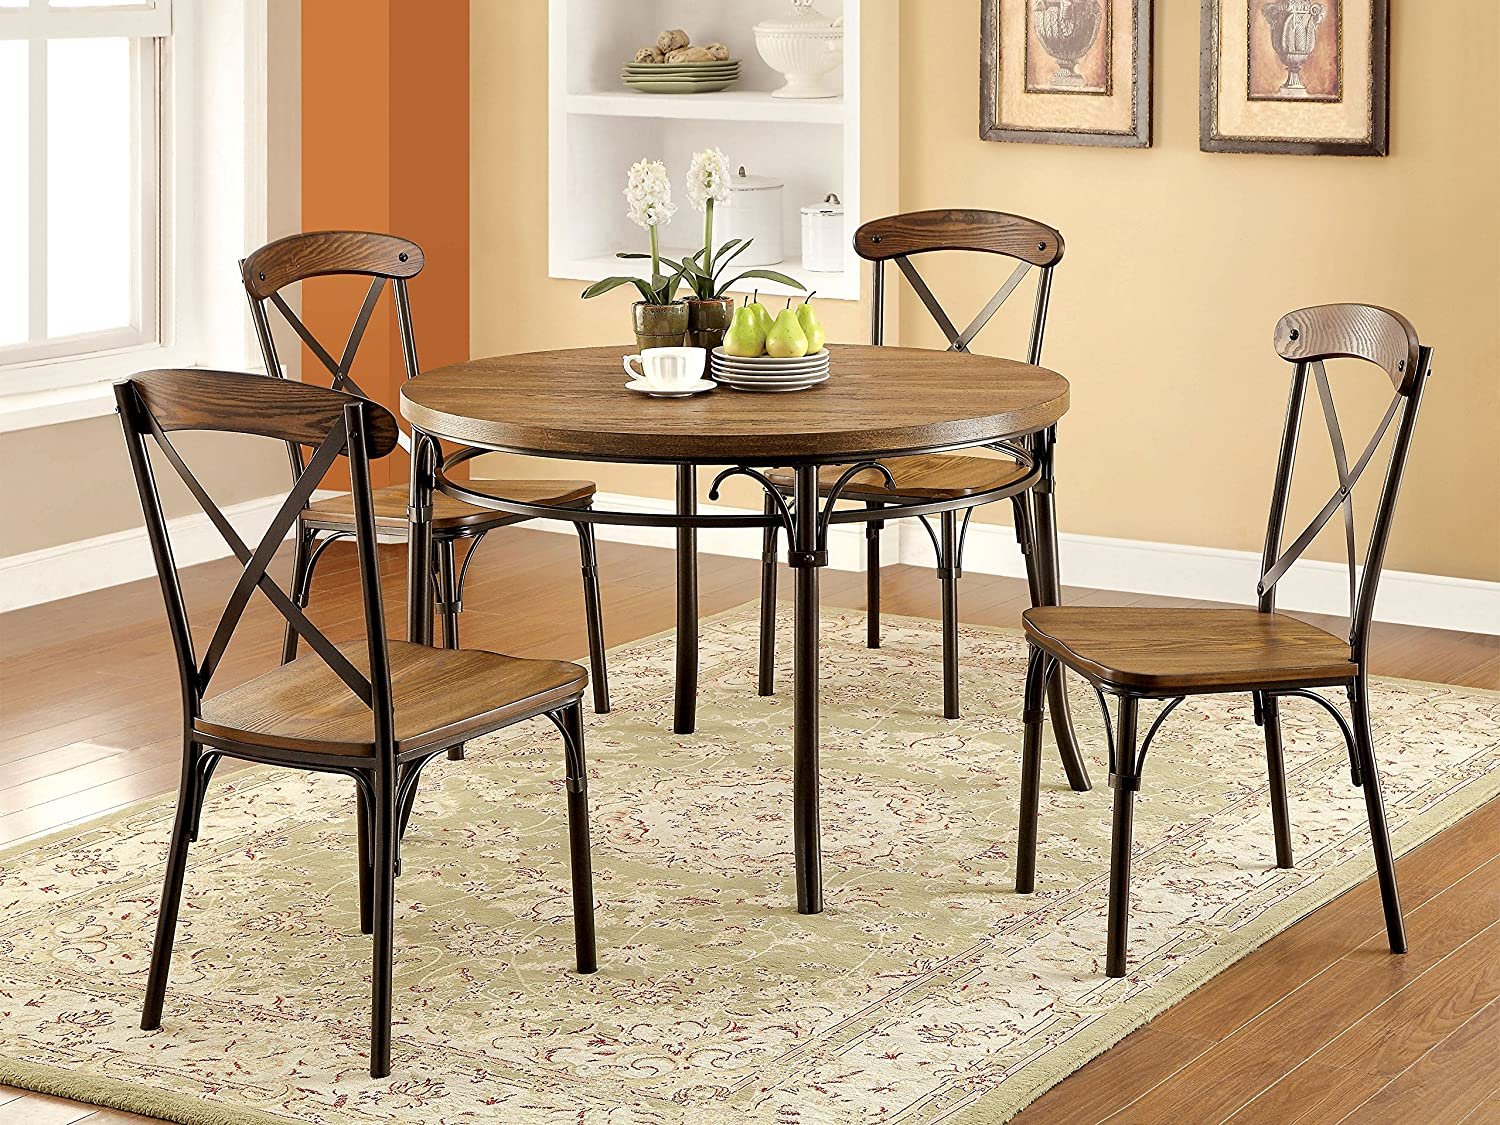 Exceptional Amazon.com   Furniture Of America Rizal Industrial Style Round Dining Chair,  Set Of 2   Chairs